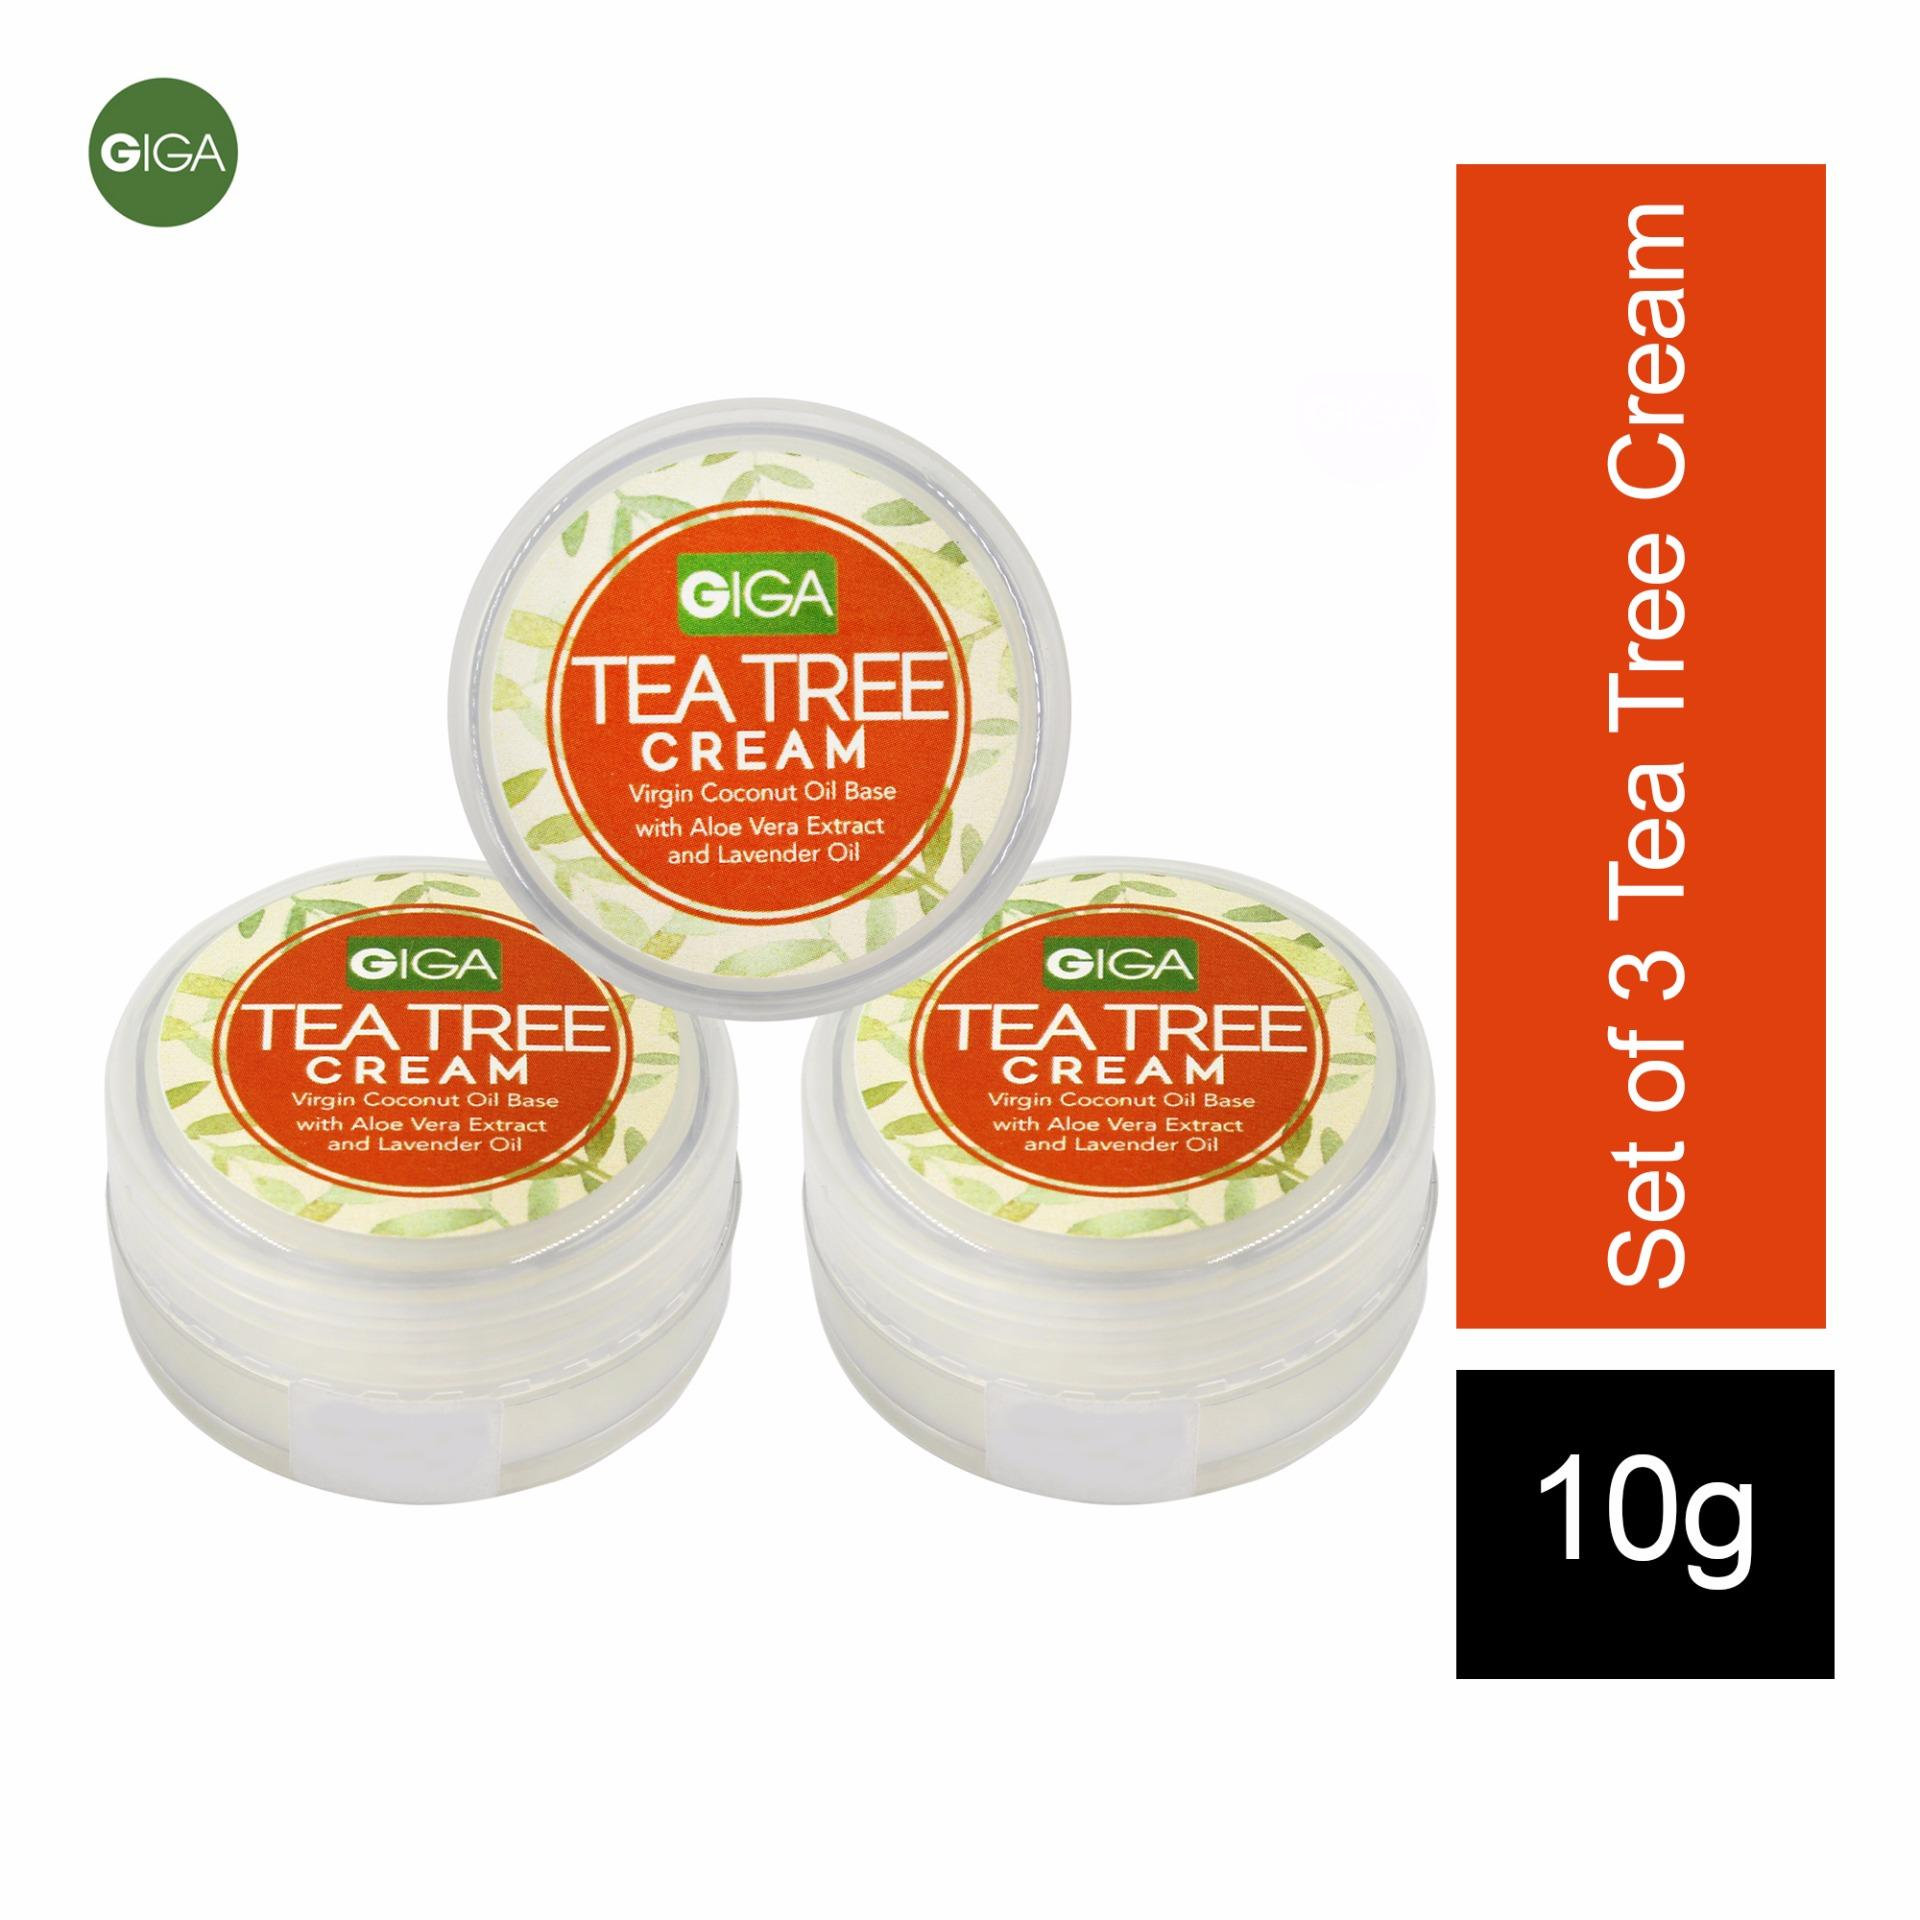 Giga Tea Tree Cream 10g Set of 3